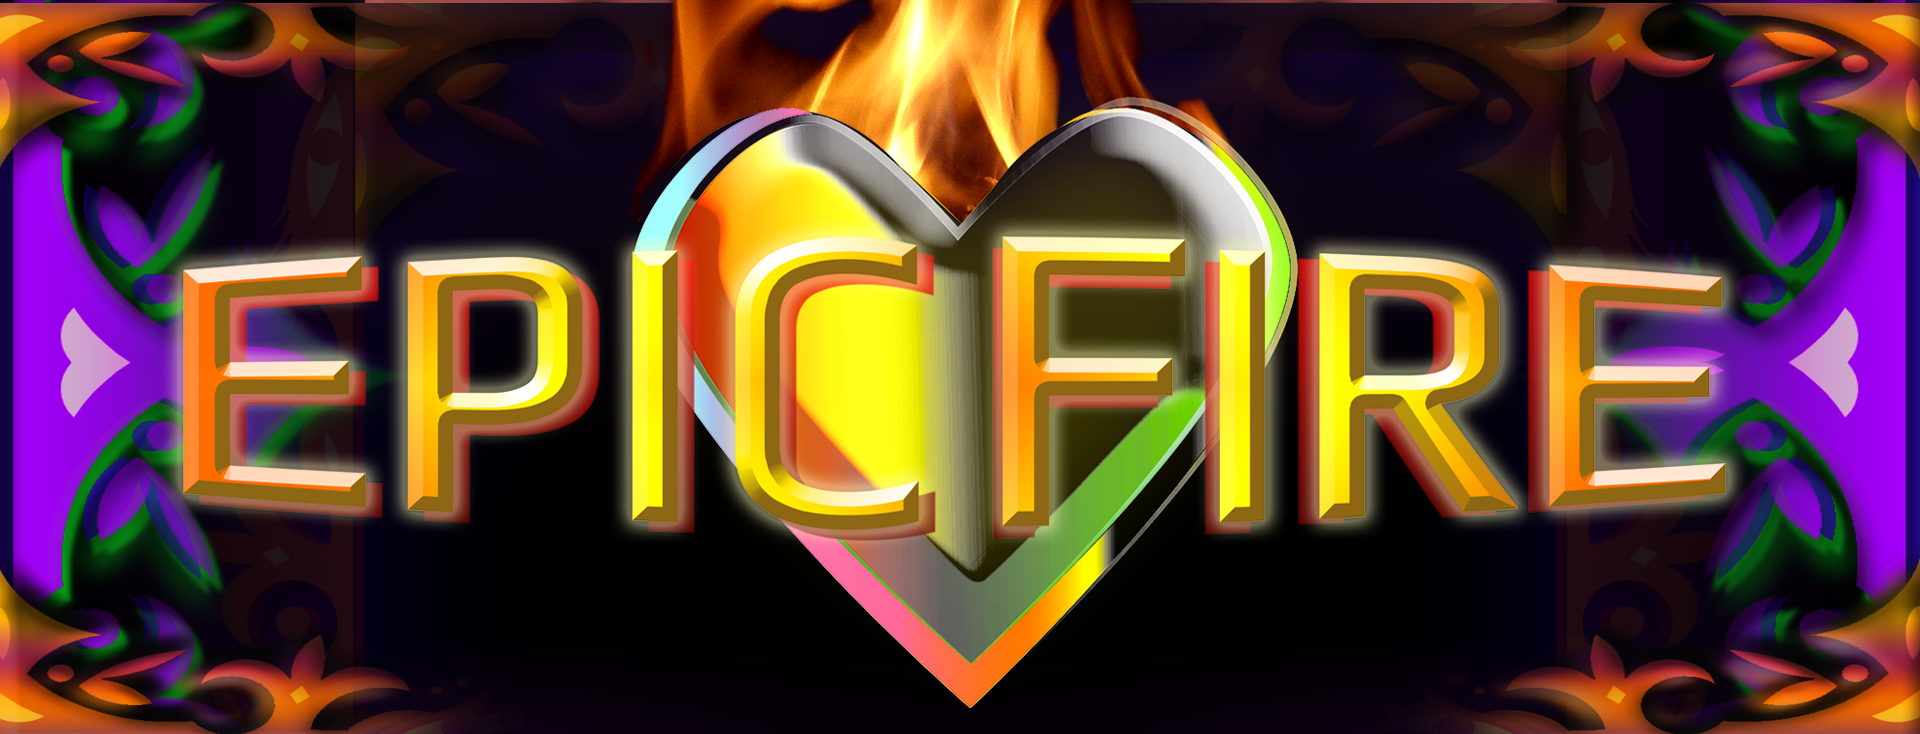 EpicFire Download Webpage